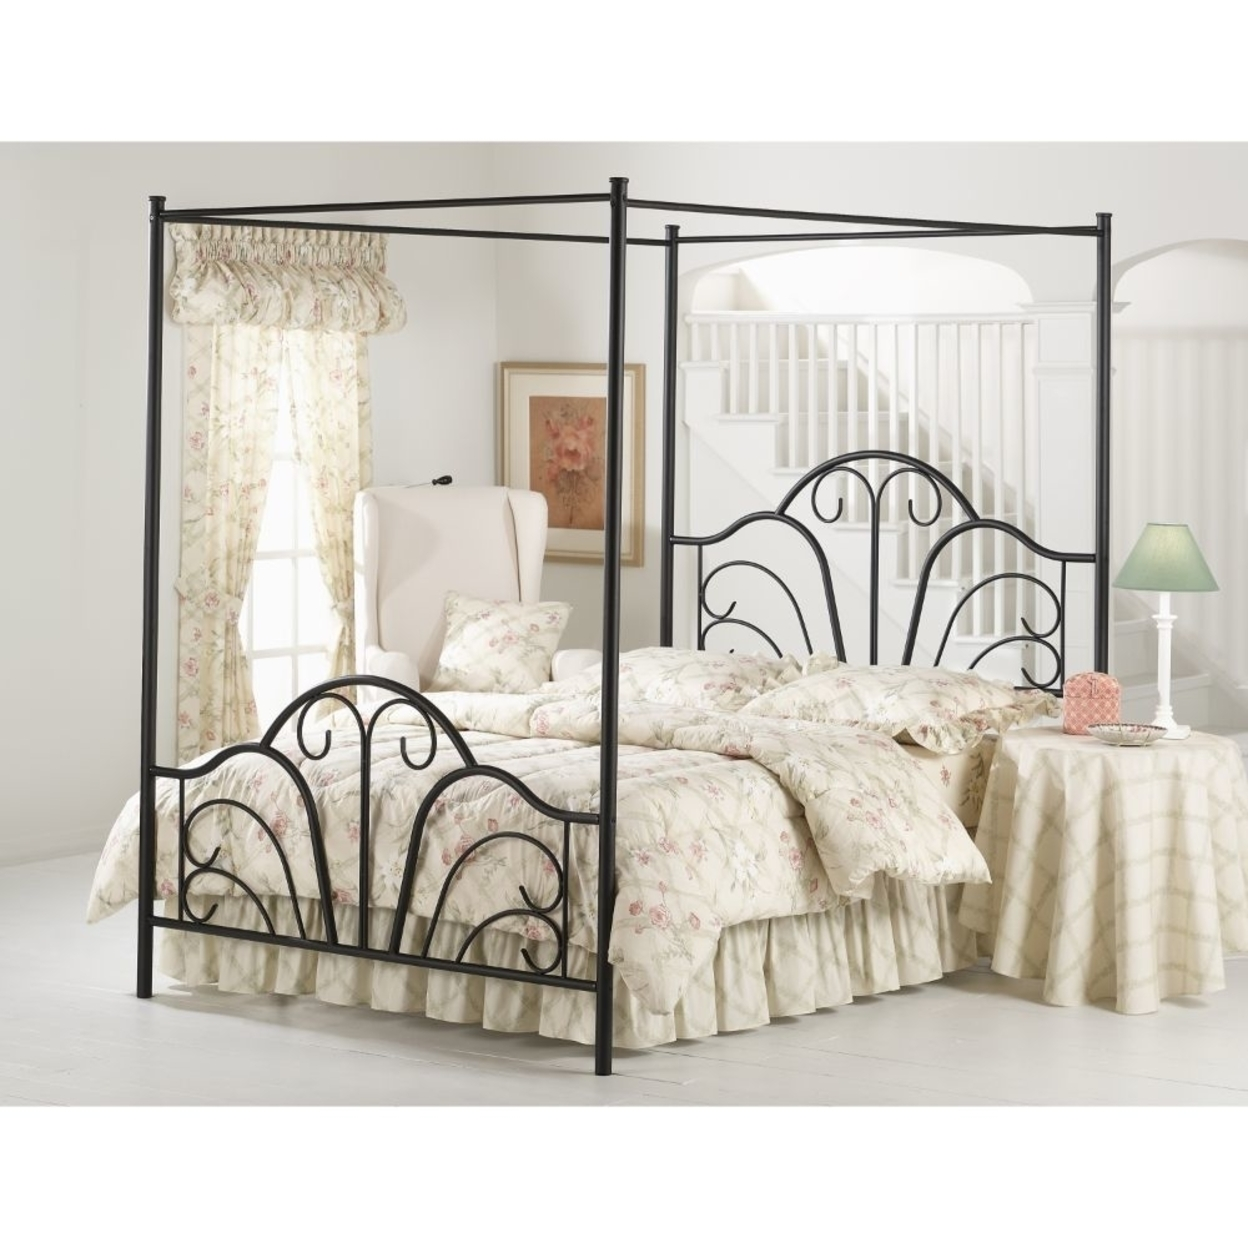 348bkp Dover Bed Set King W/canopy & Legs Rails Not Included